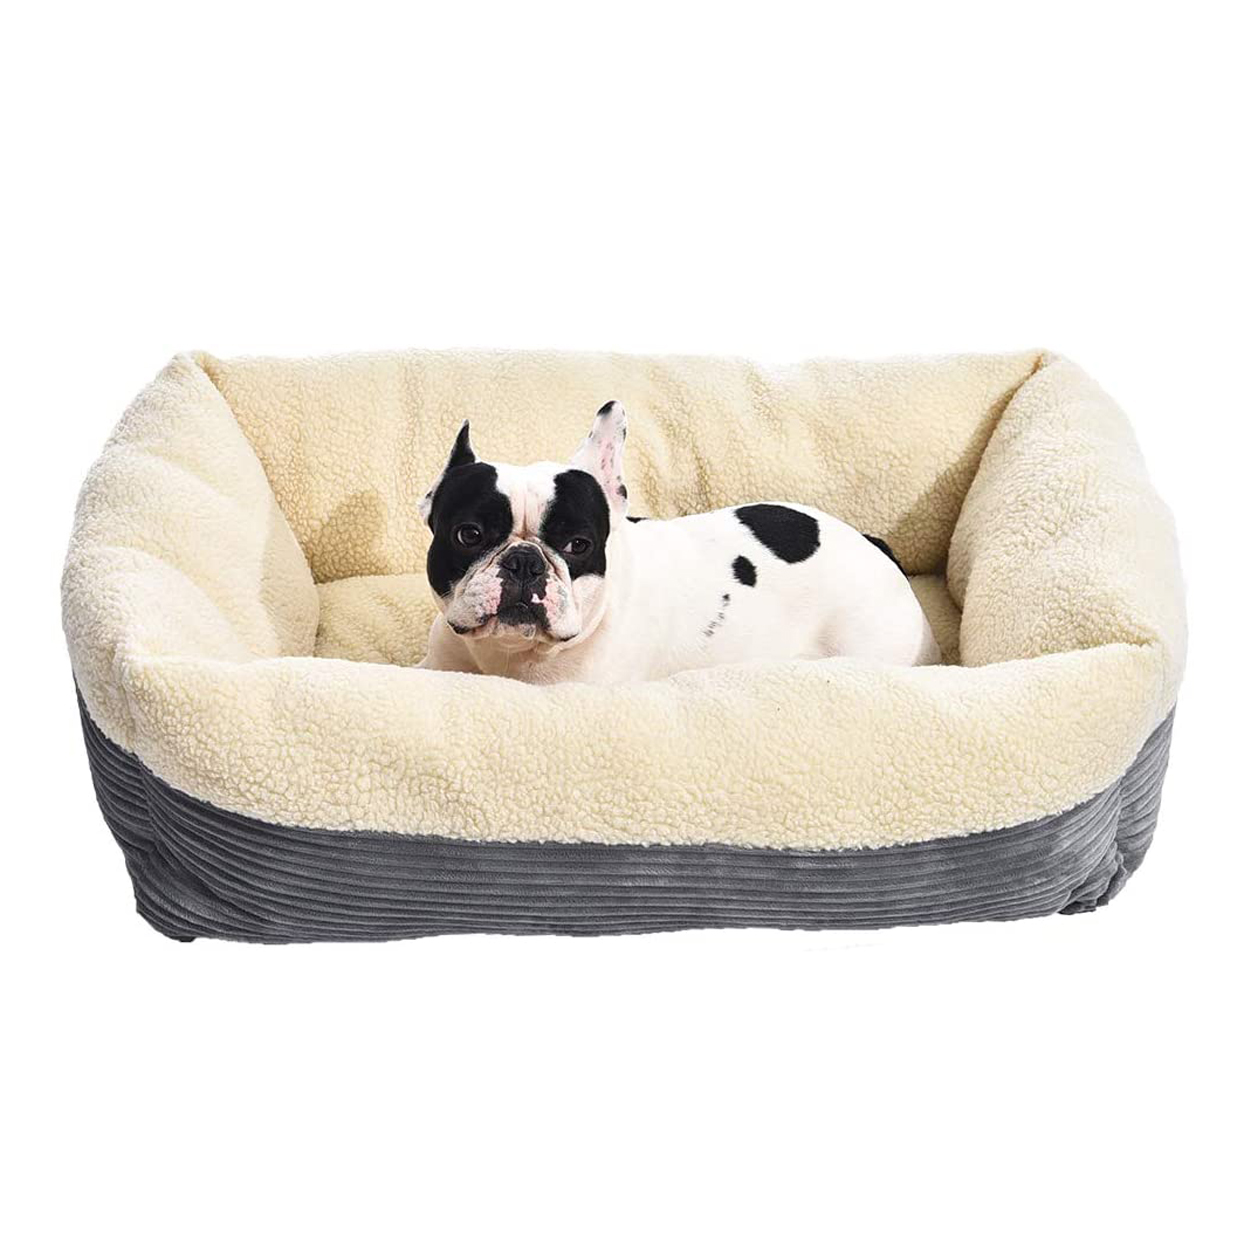 amazonbasics-warming-pet-bed-for-cats-or-dogs